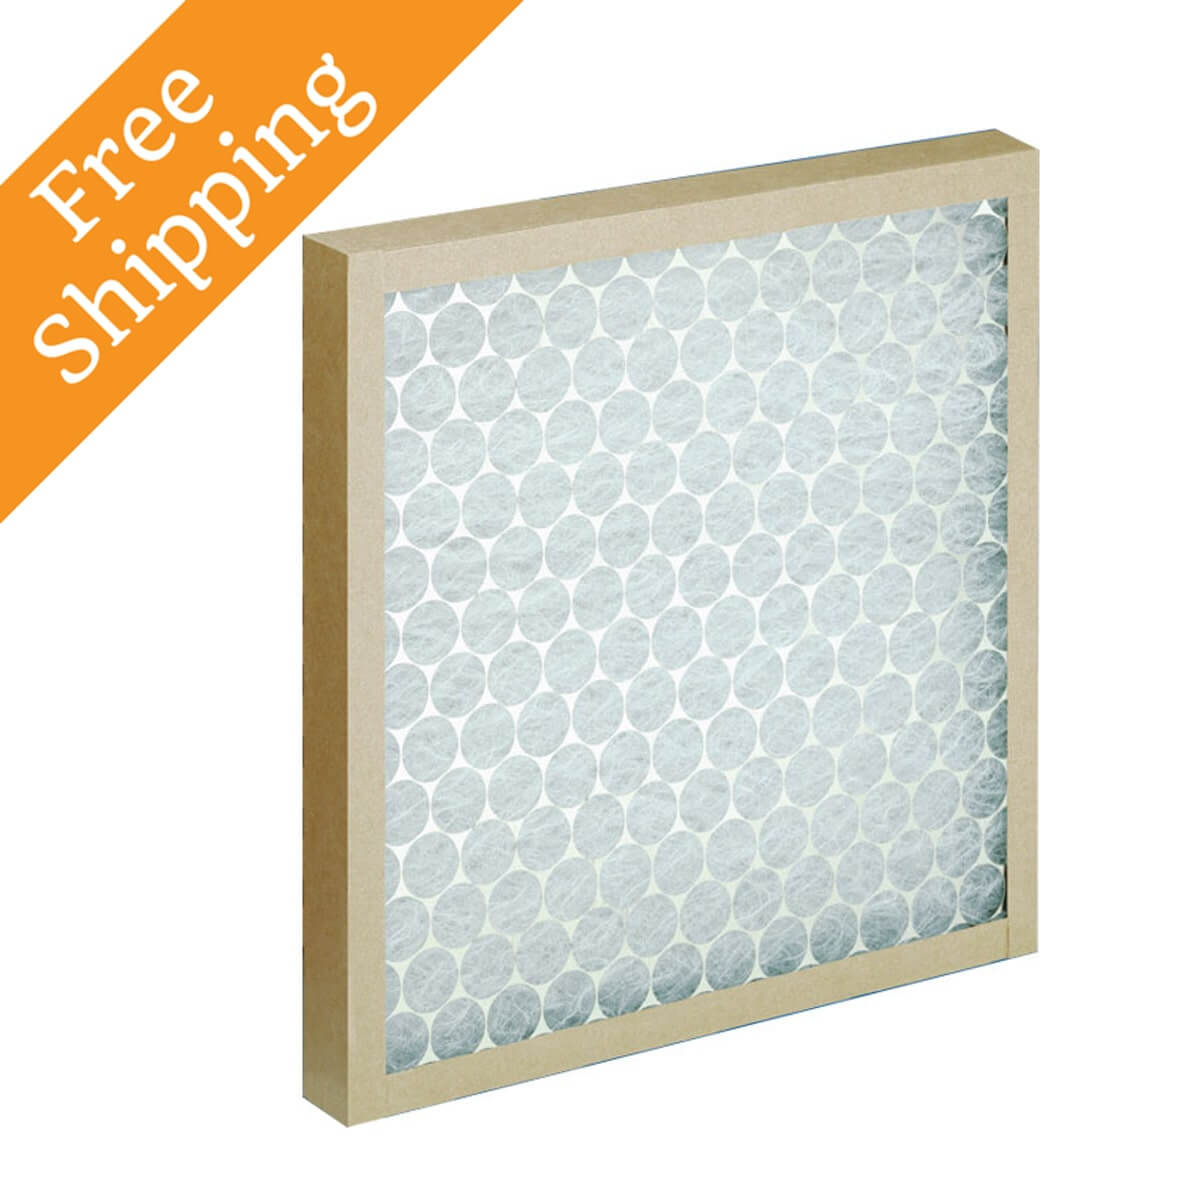 Glasfloss 12x12x1 Air Filter PTA Series